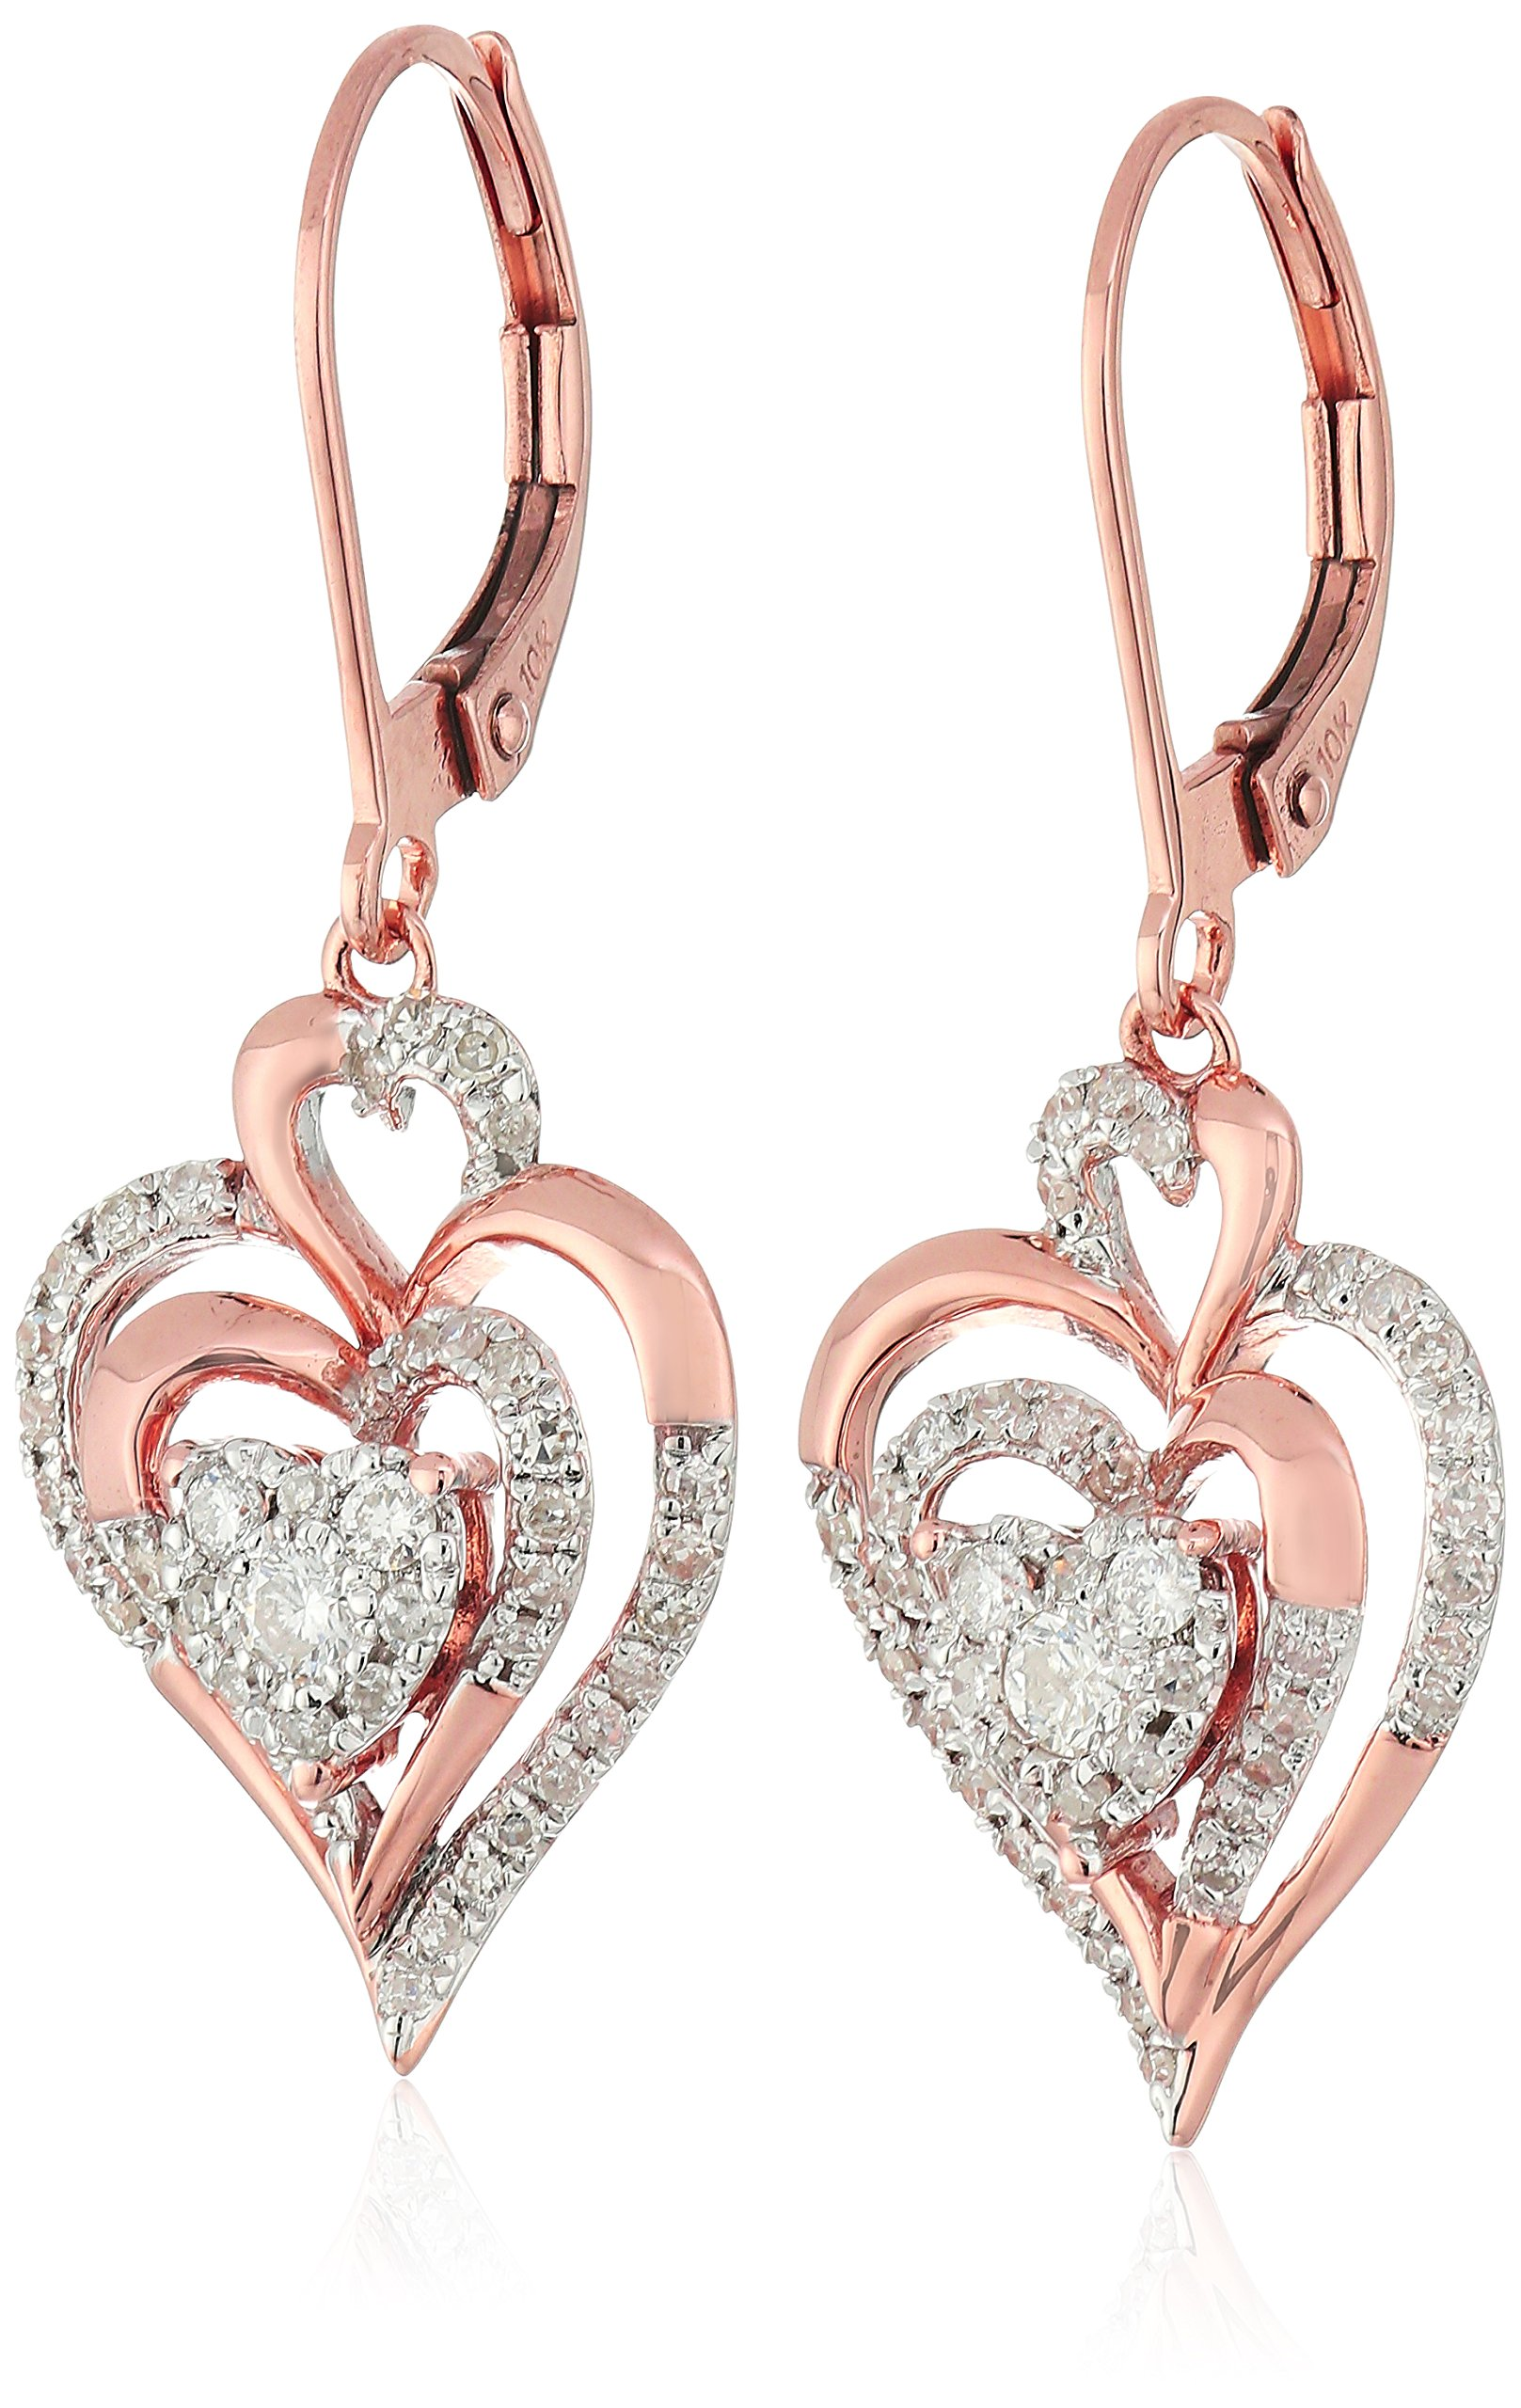 10K Rose Gold Cluster Heart Diamond Earrings (1/2cttw, I-J Color, I2-I3 Clarity)